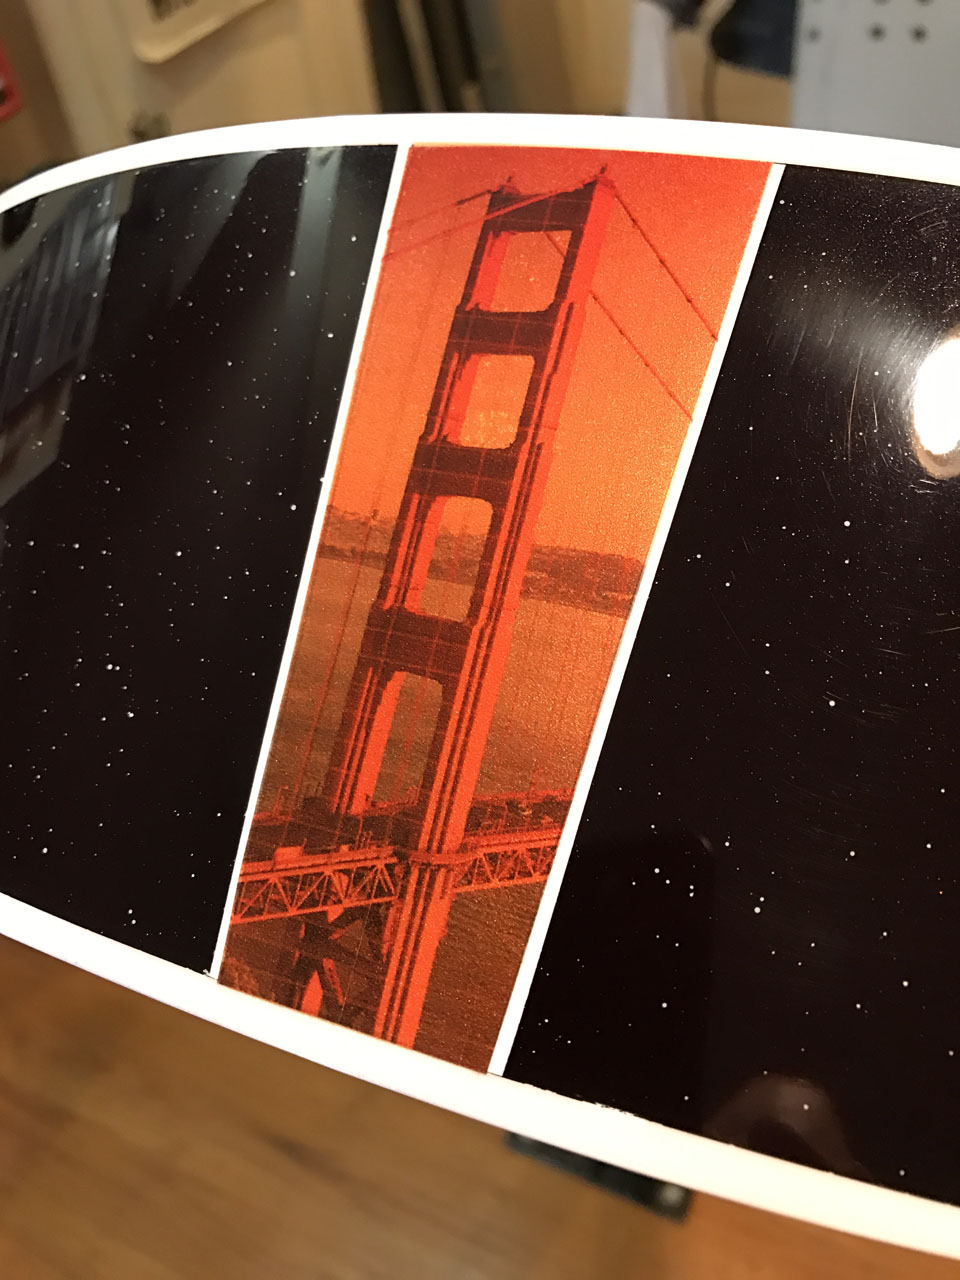 """ULTIMATE """"FLASH"""": THE """"CALIFORNIA SUNSET"""" 700C/6 HAS A FULL-COLOR ILLUSTRATION OF THE GOLDEN GATE BRIDGE, FLANKED BY WHITE BINDING STRIPS FOR EMPHASIS."""